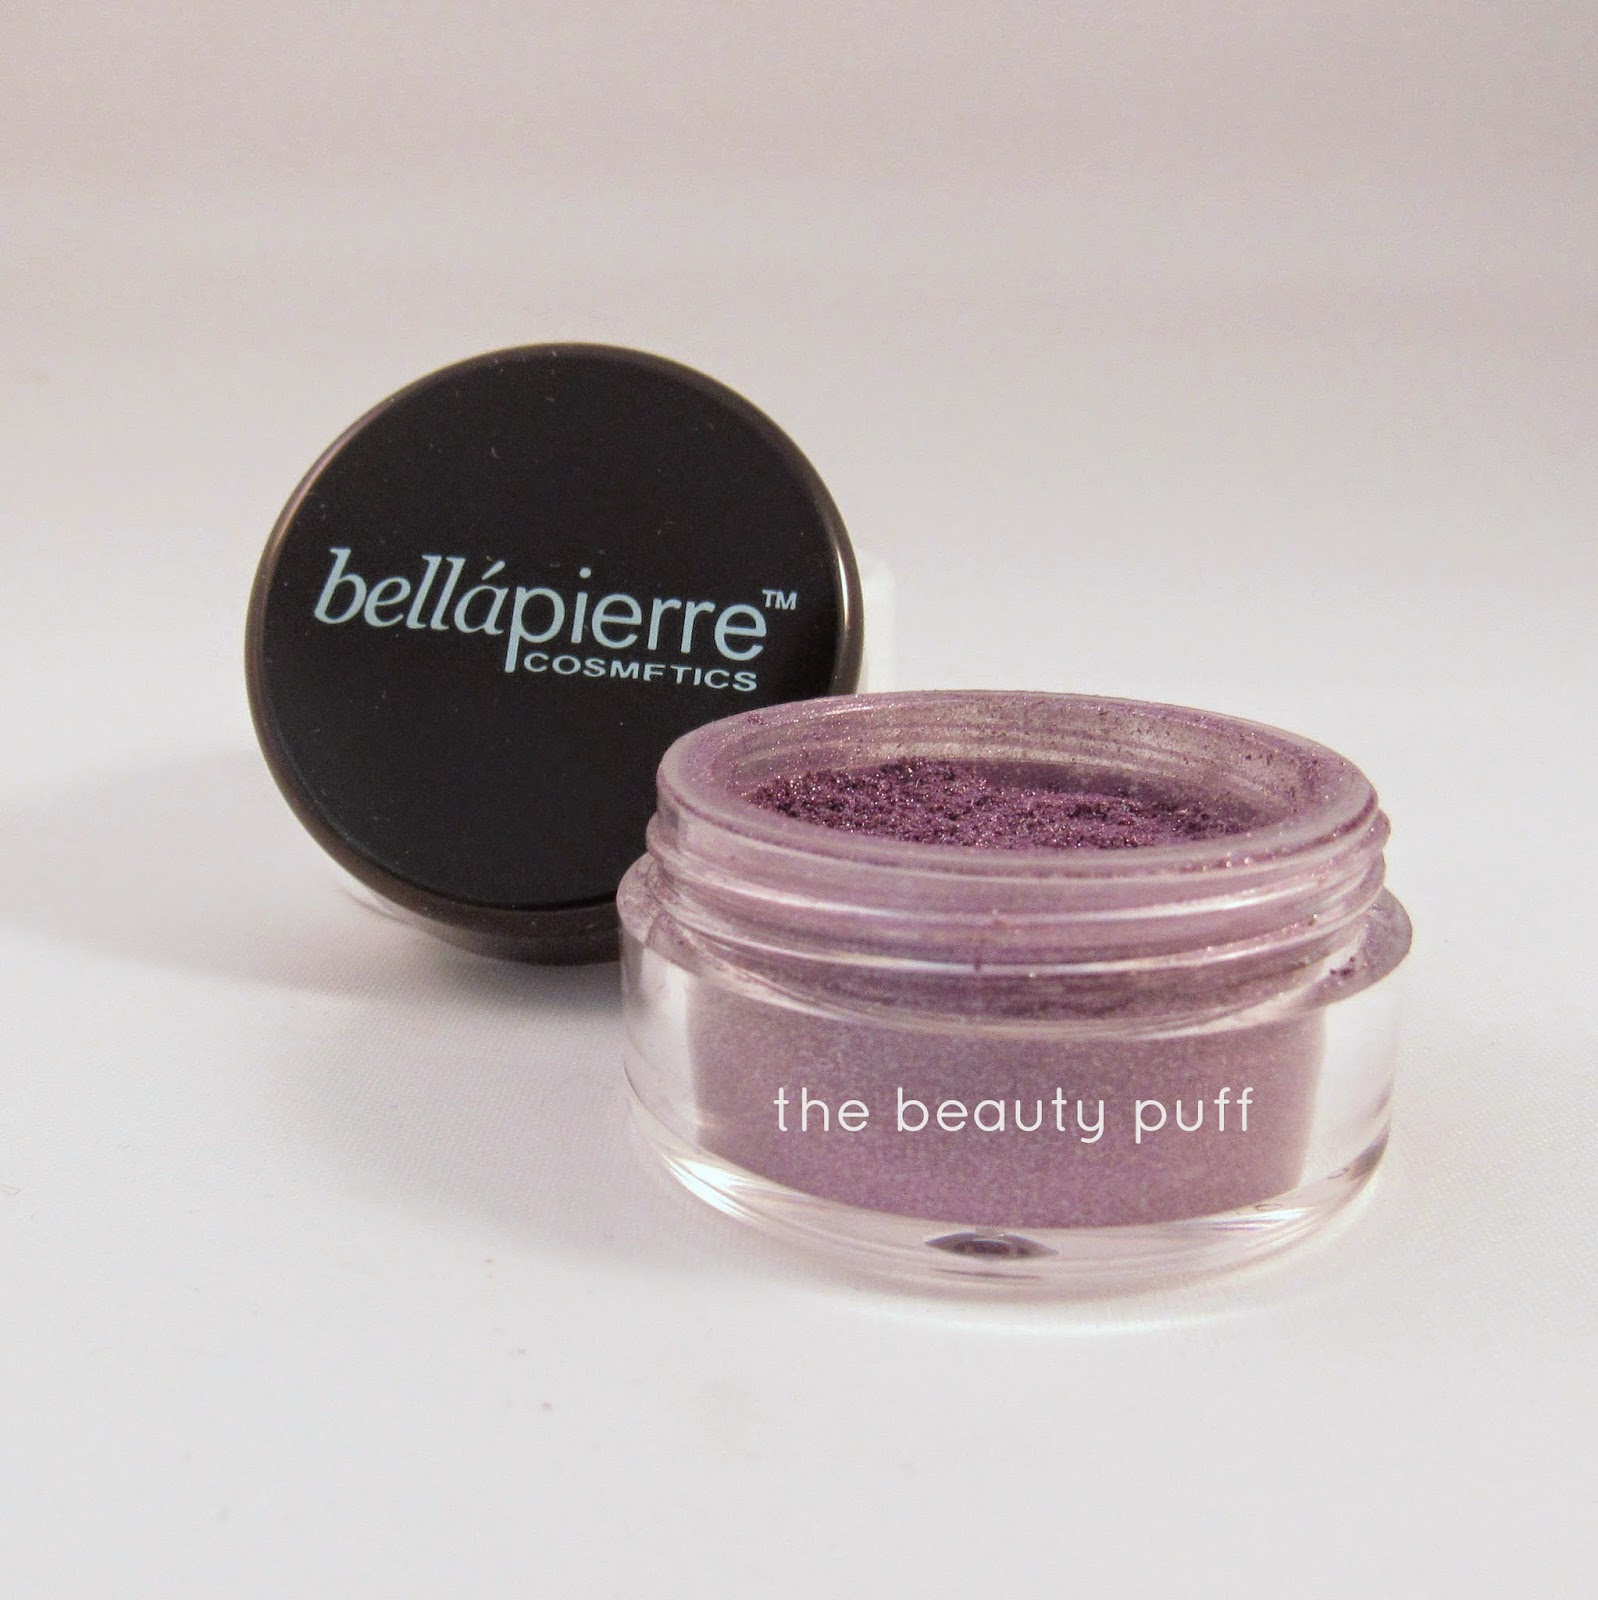 bellapierre hurly burly - the beauty puff